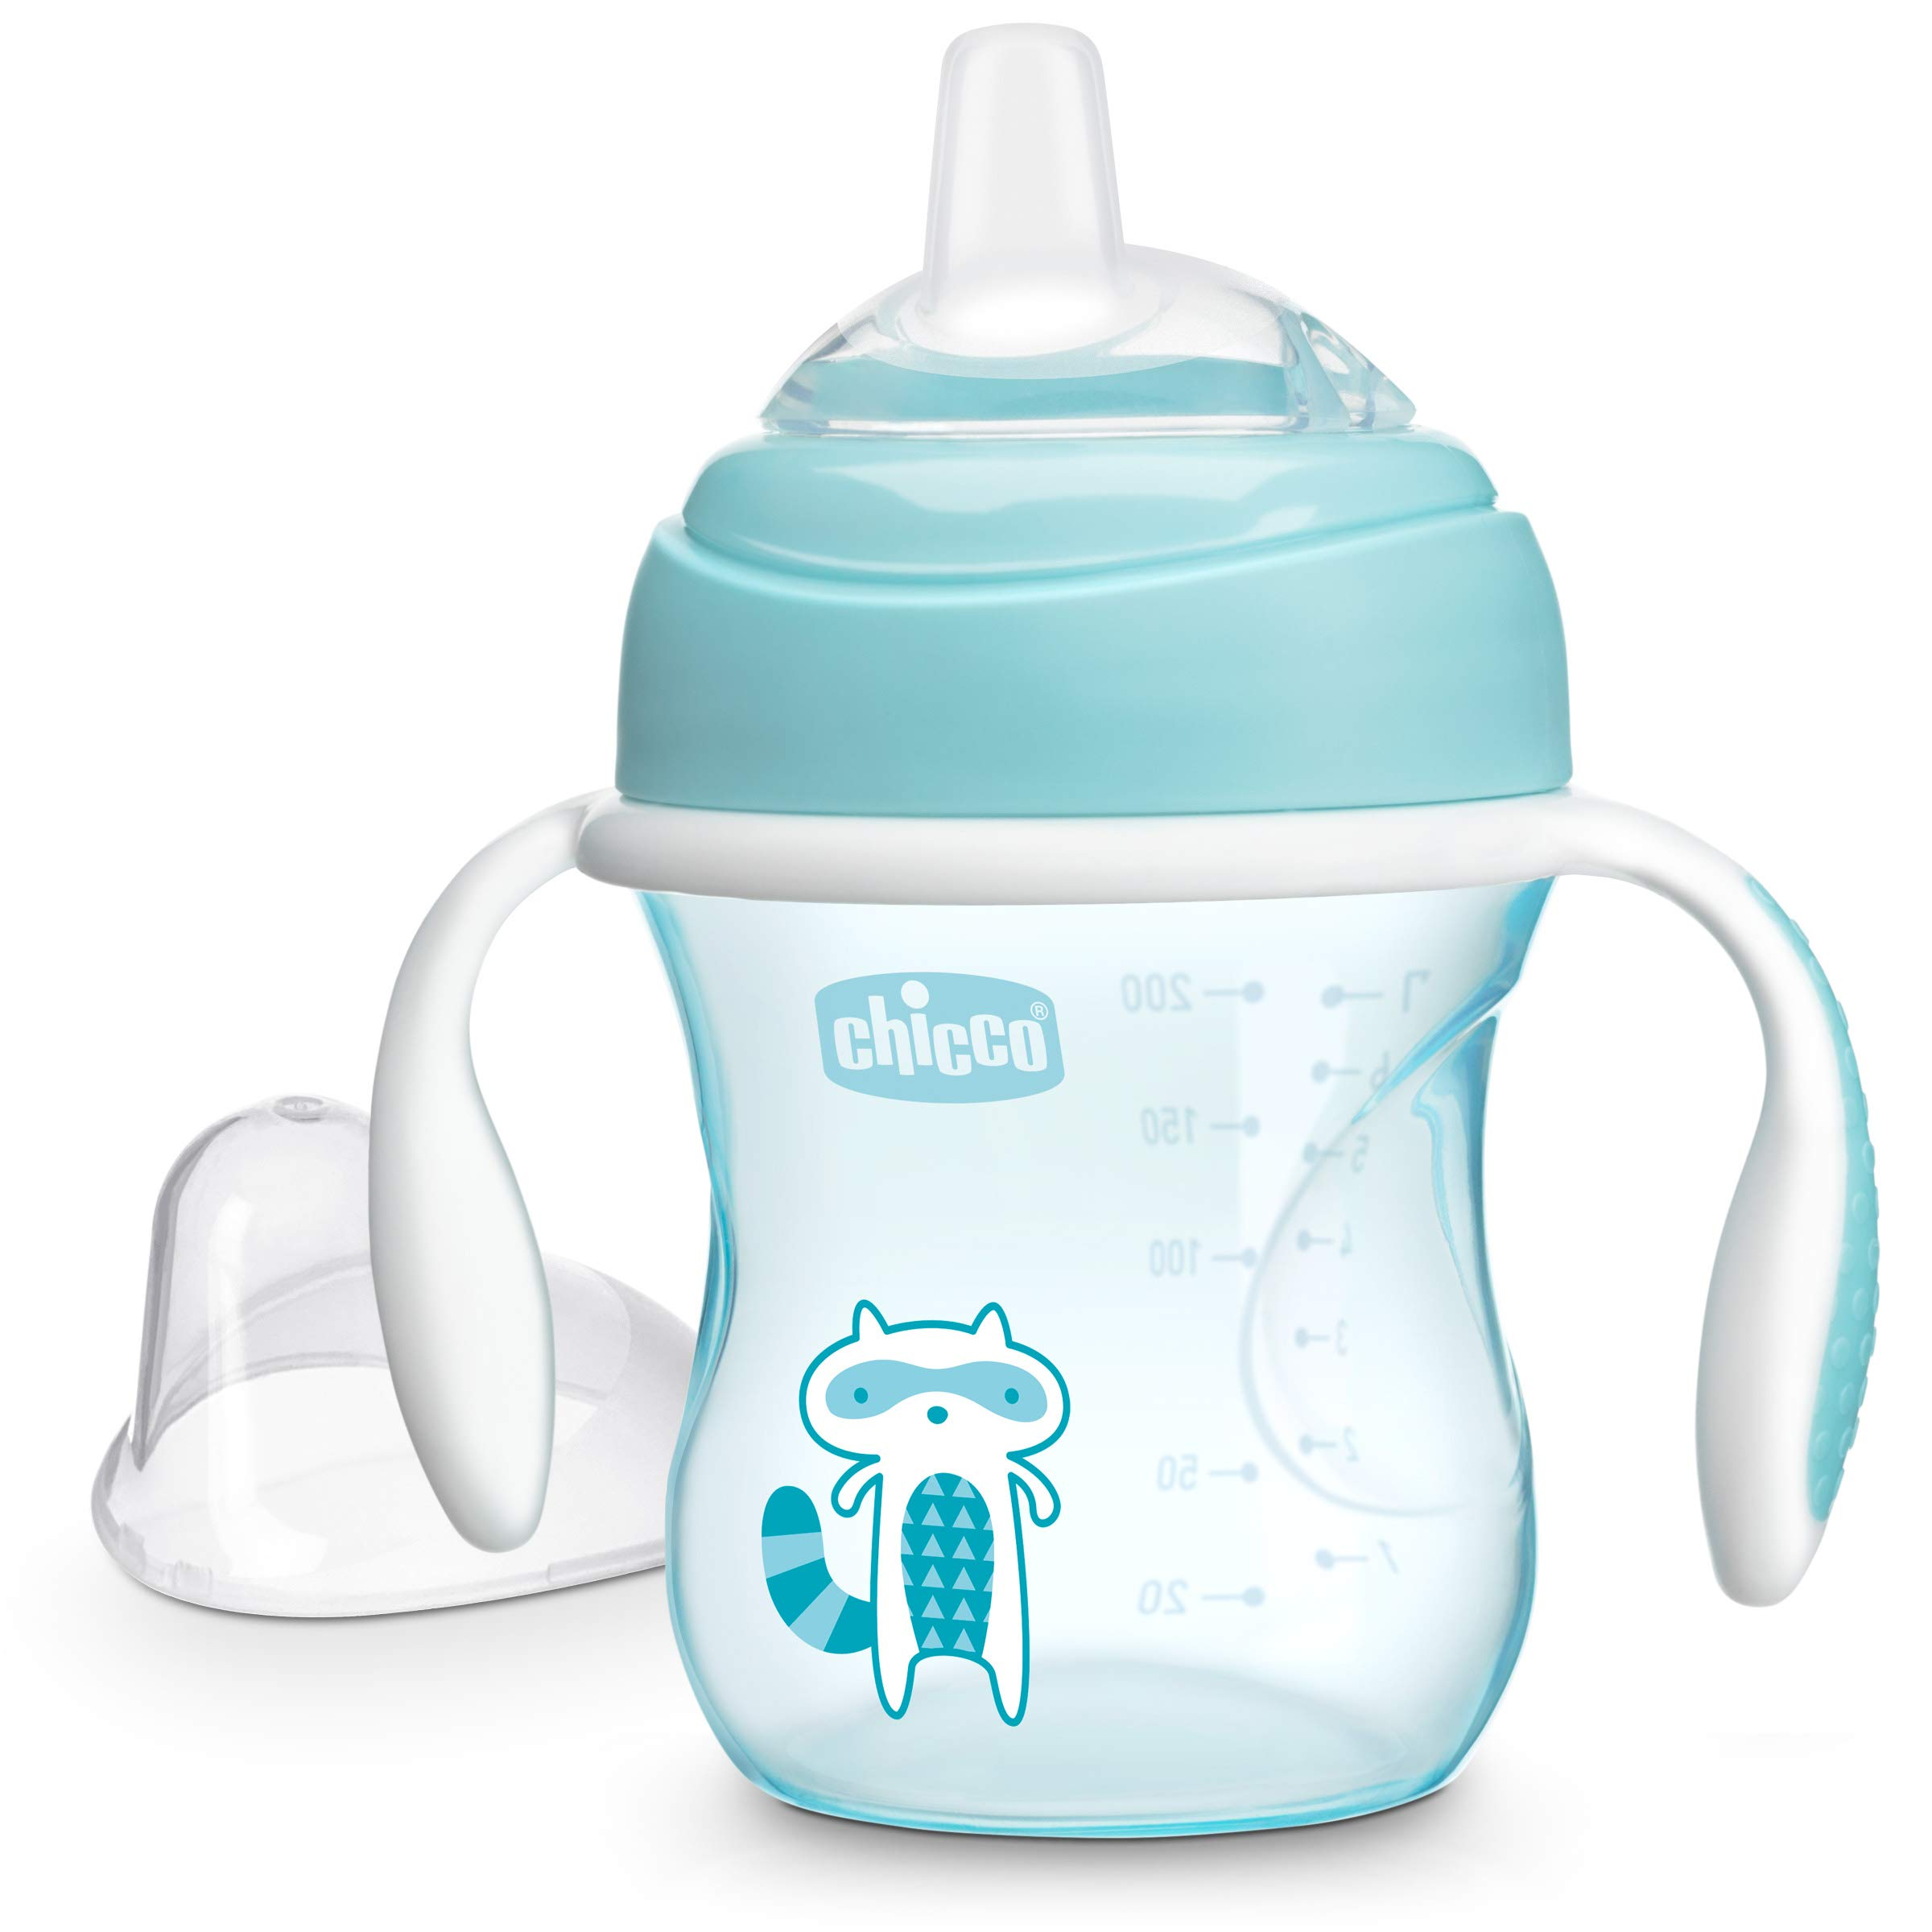 Chicco Soft Silicone Spout Spill Free Transition Baby Sippy Cup, Blue, 7 Ounce/4M+